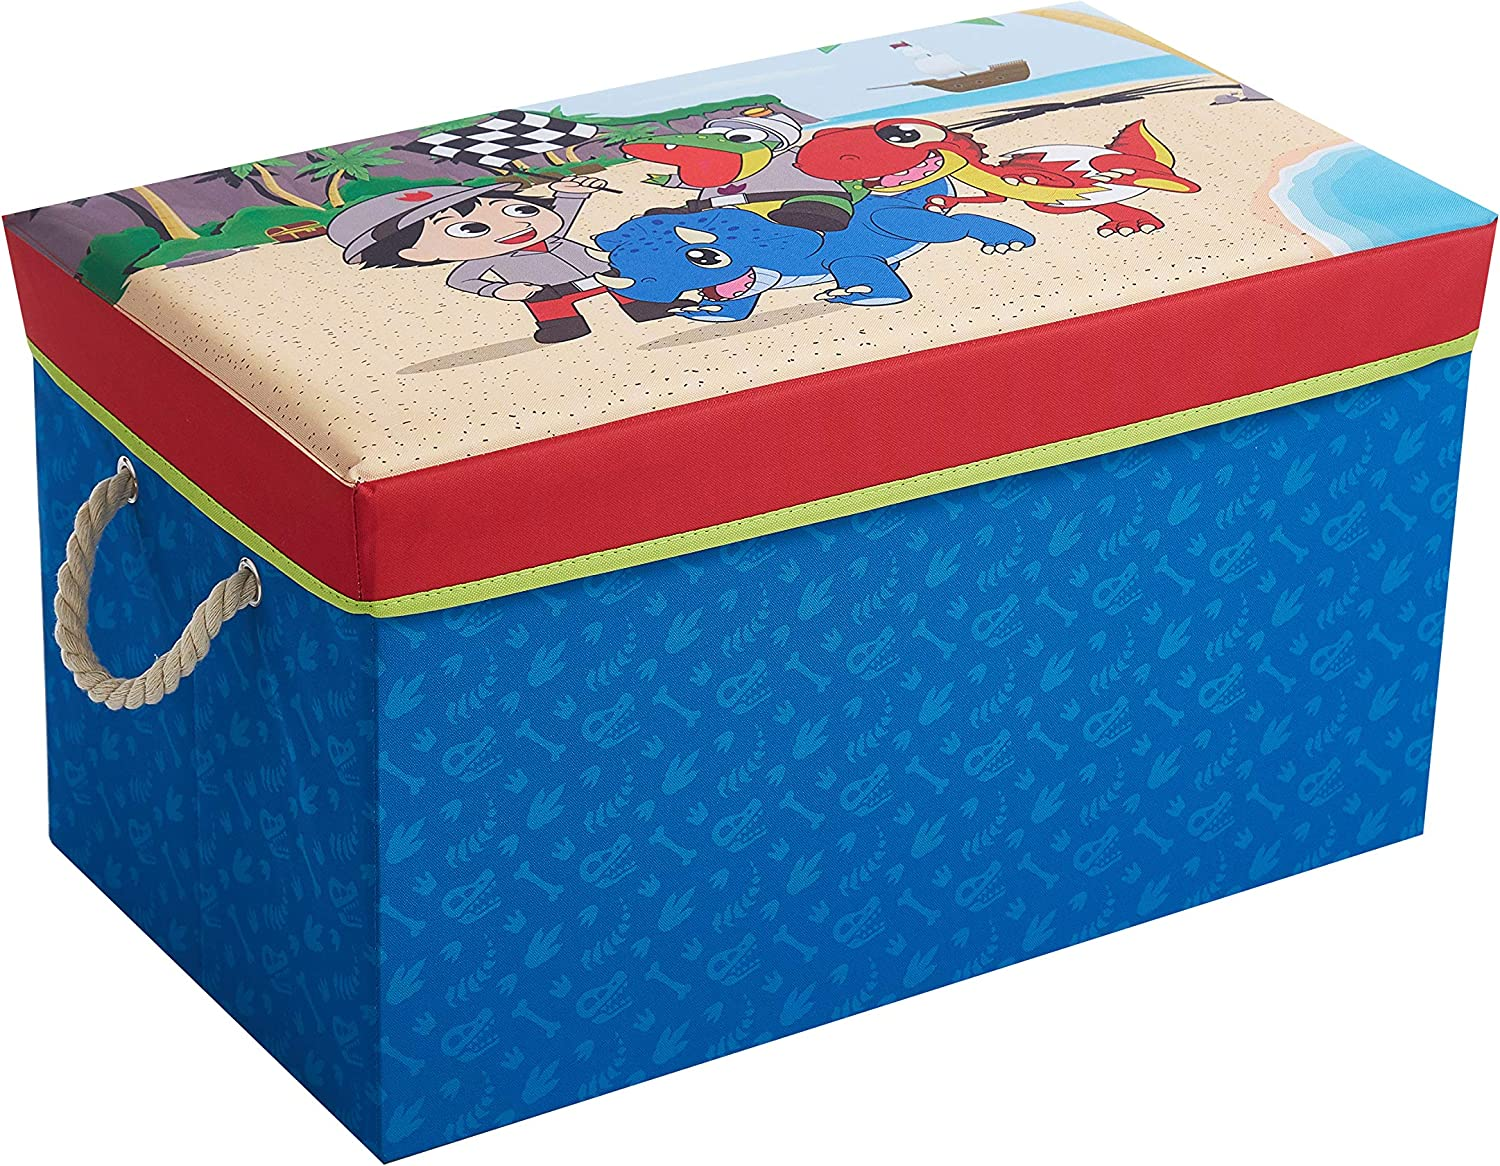 Idea Nuova Ryan's World Collapsible Toy Storage Bench and Ottoman, 14.5